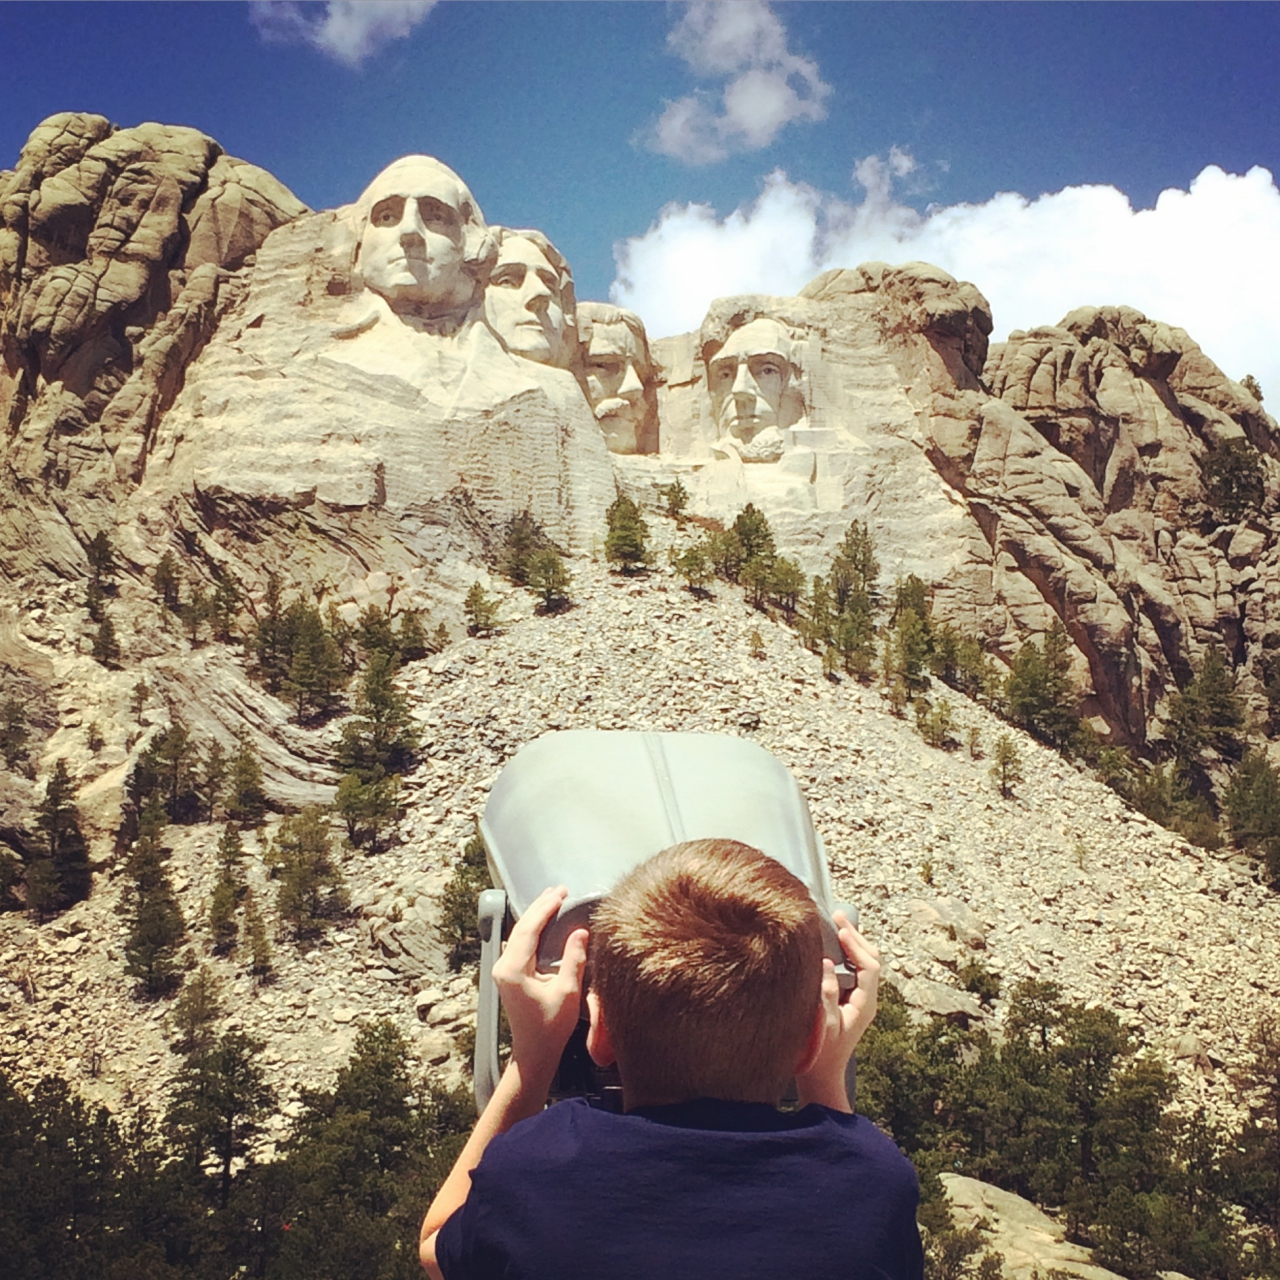 mount rushmore essay View essay - mount rushmore essay from english 101 at fishers high school elaina scenna period 2 october 5, 2015 mount rushmore the presidents that have the honor of having their face sculpted into.